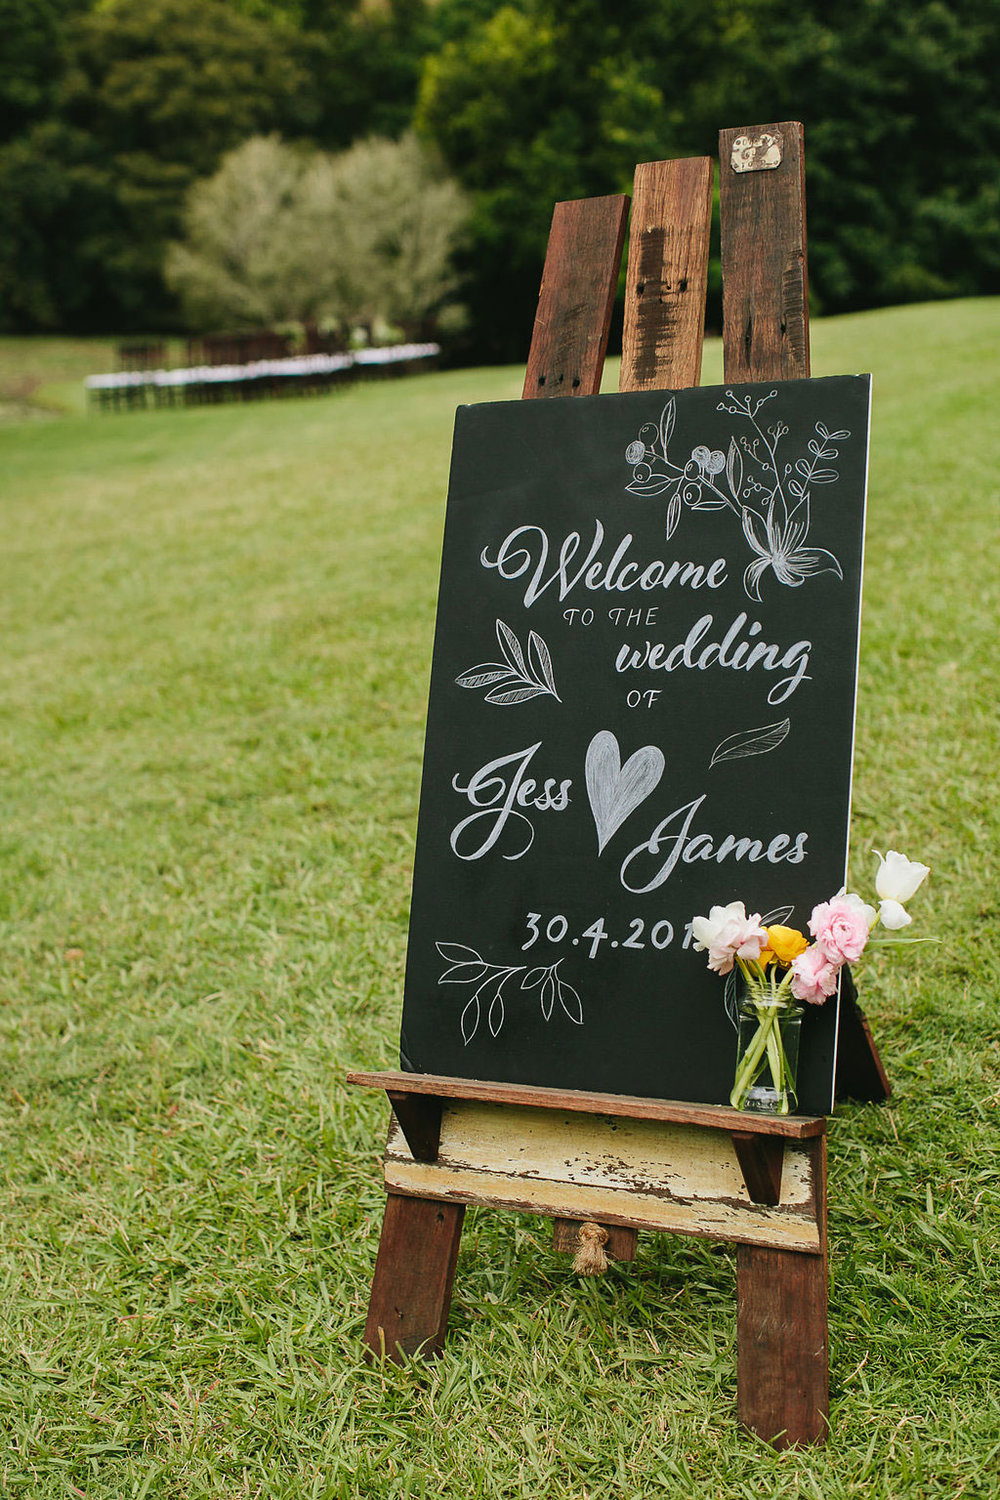 Custom hand-lettered wedding chalkboard welcome sign // by Chavelli www.chavelli.com // photo by Shane Shepherd www.shaneshepherd.com